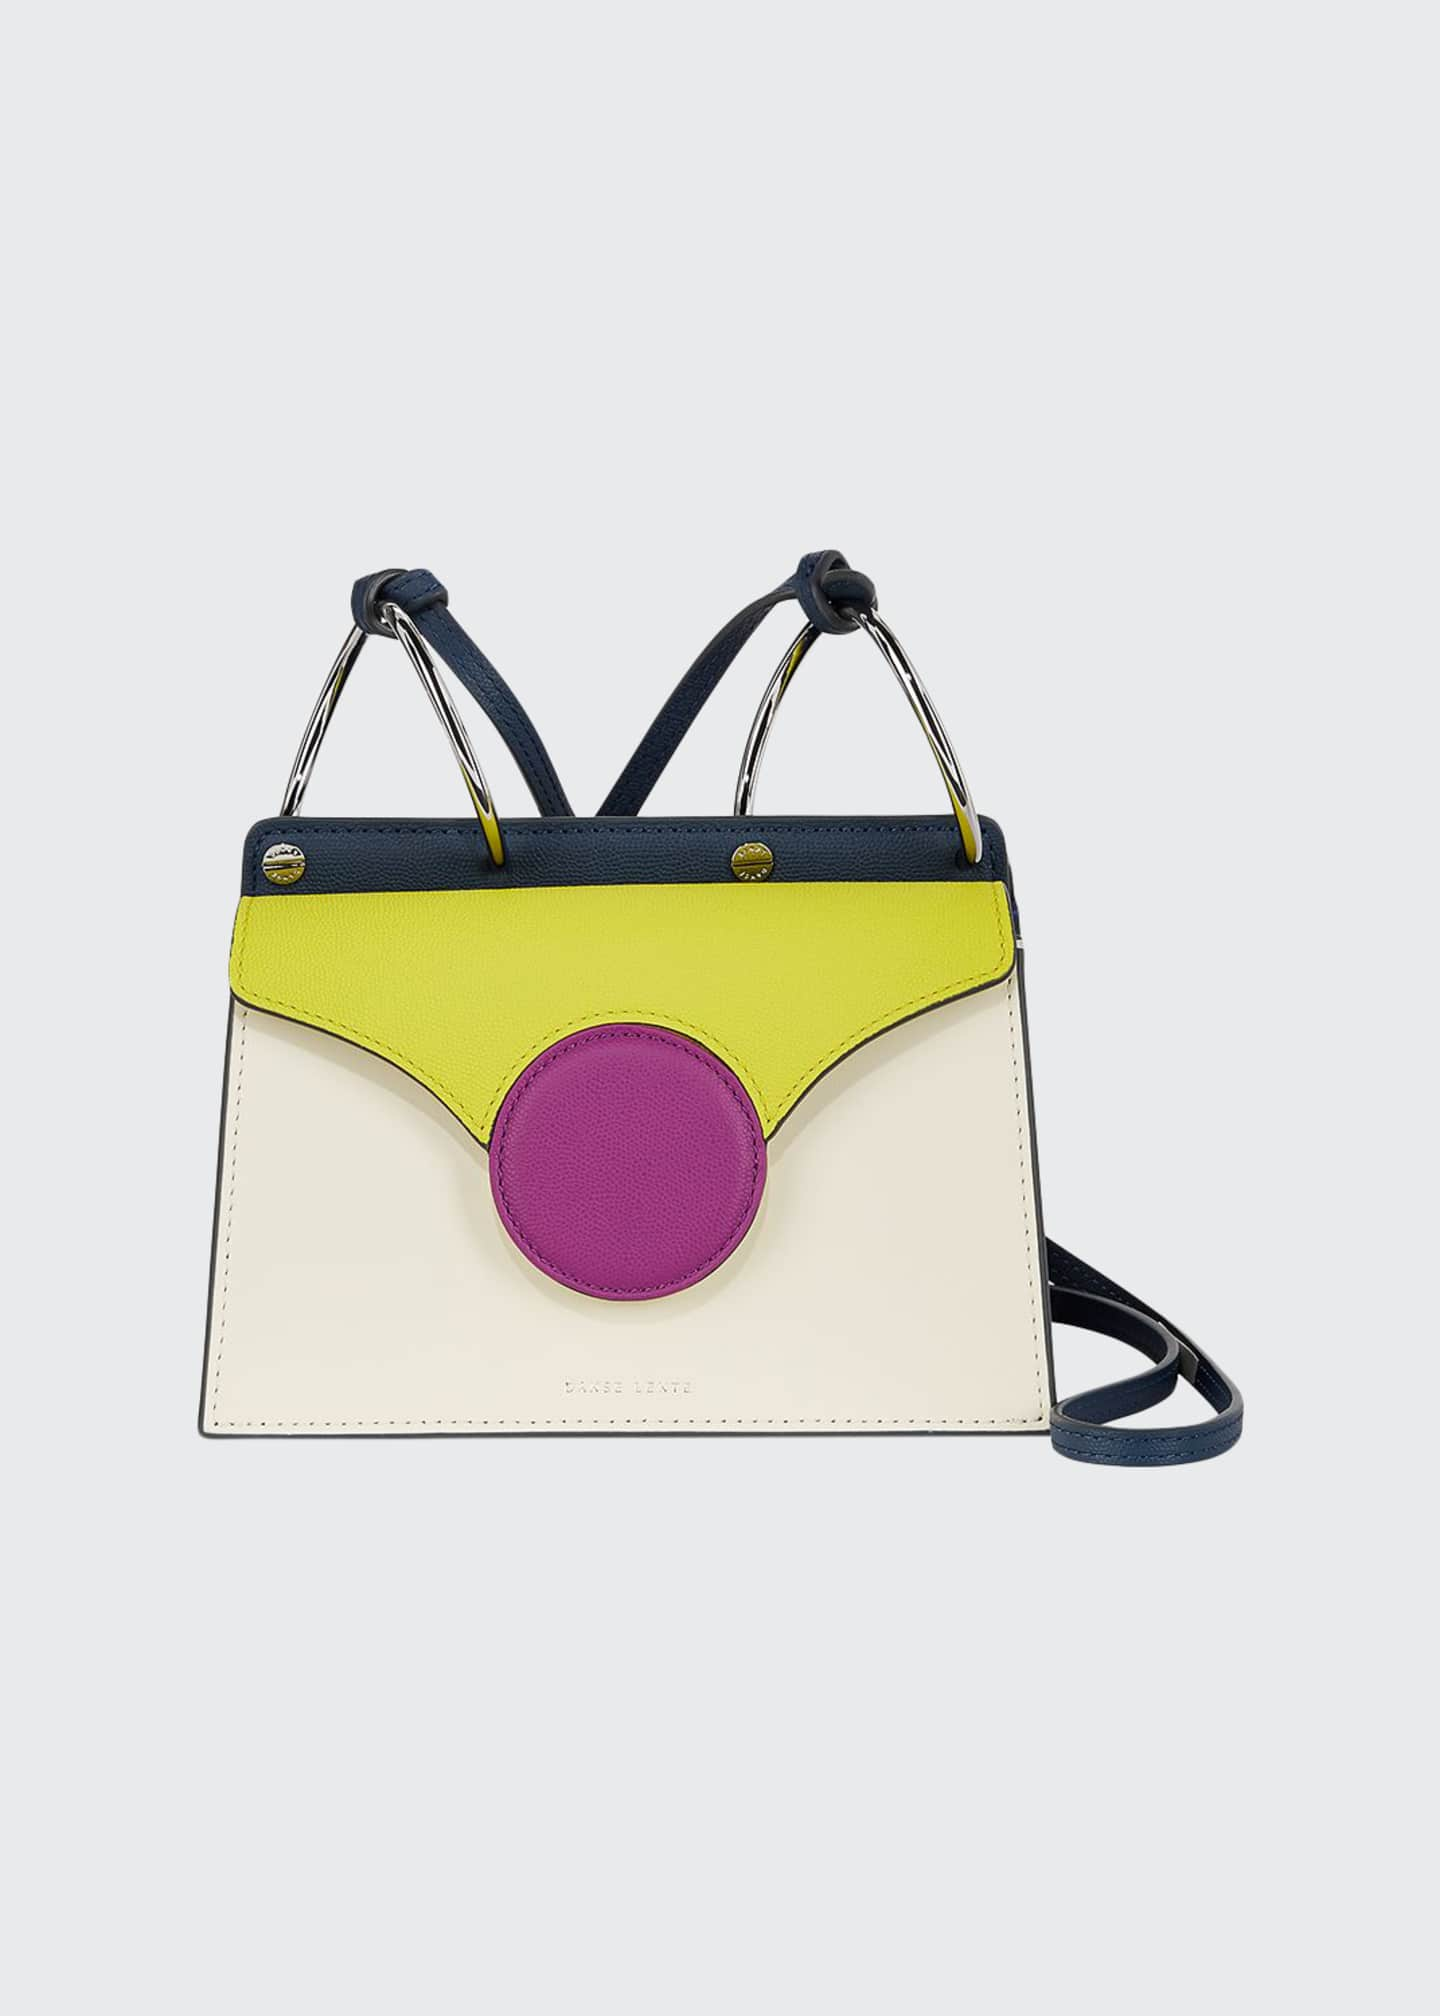 Danse Lente Phoebe Mini Colorblock Shoulder Bag